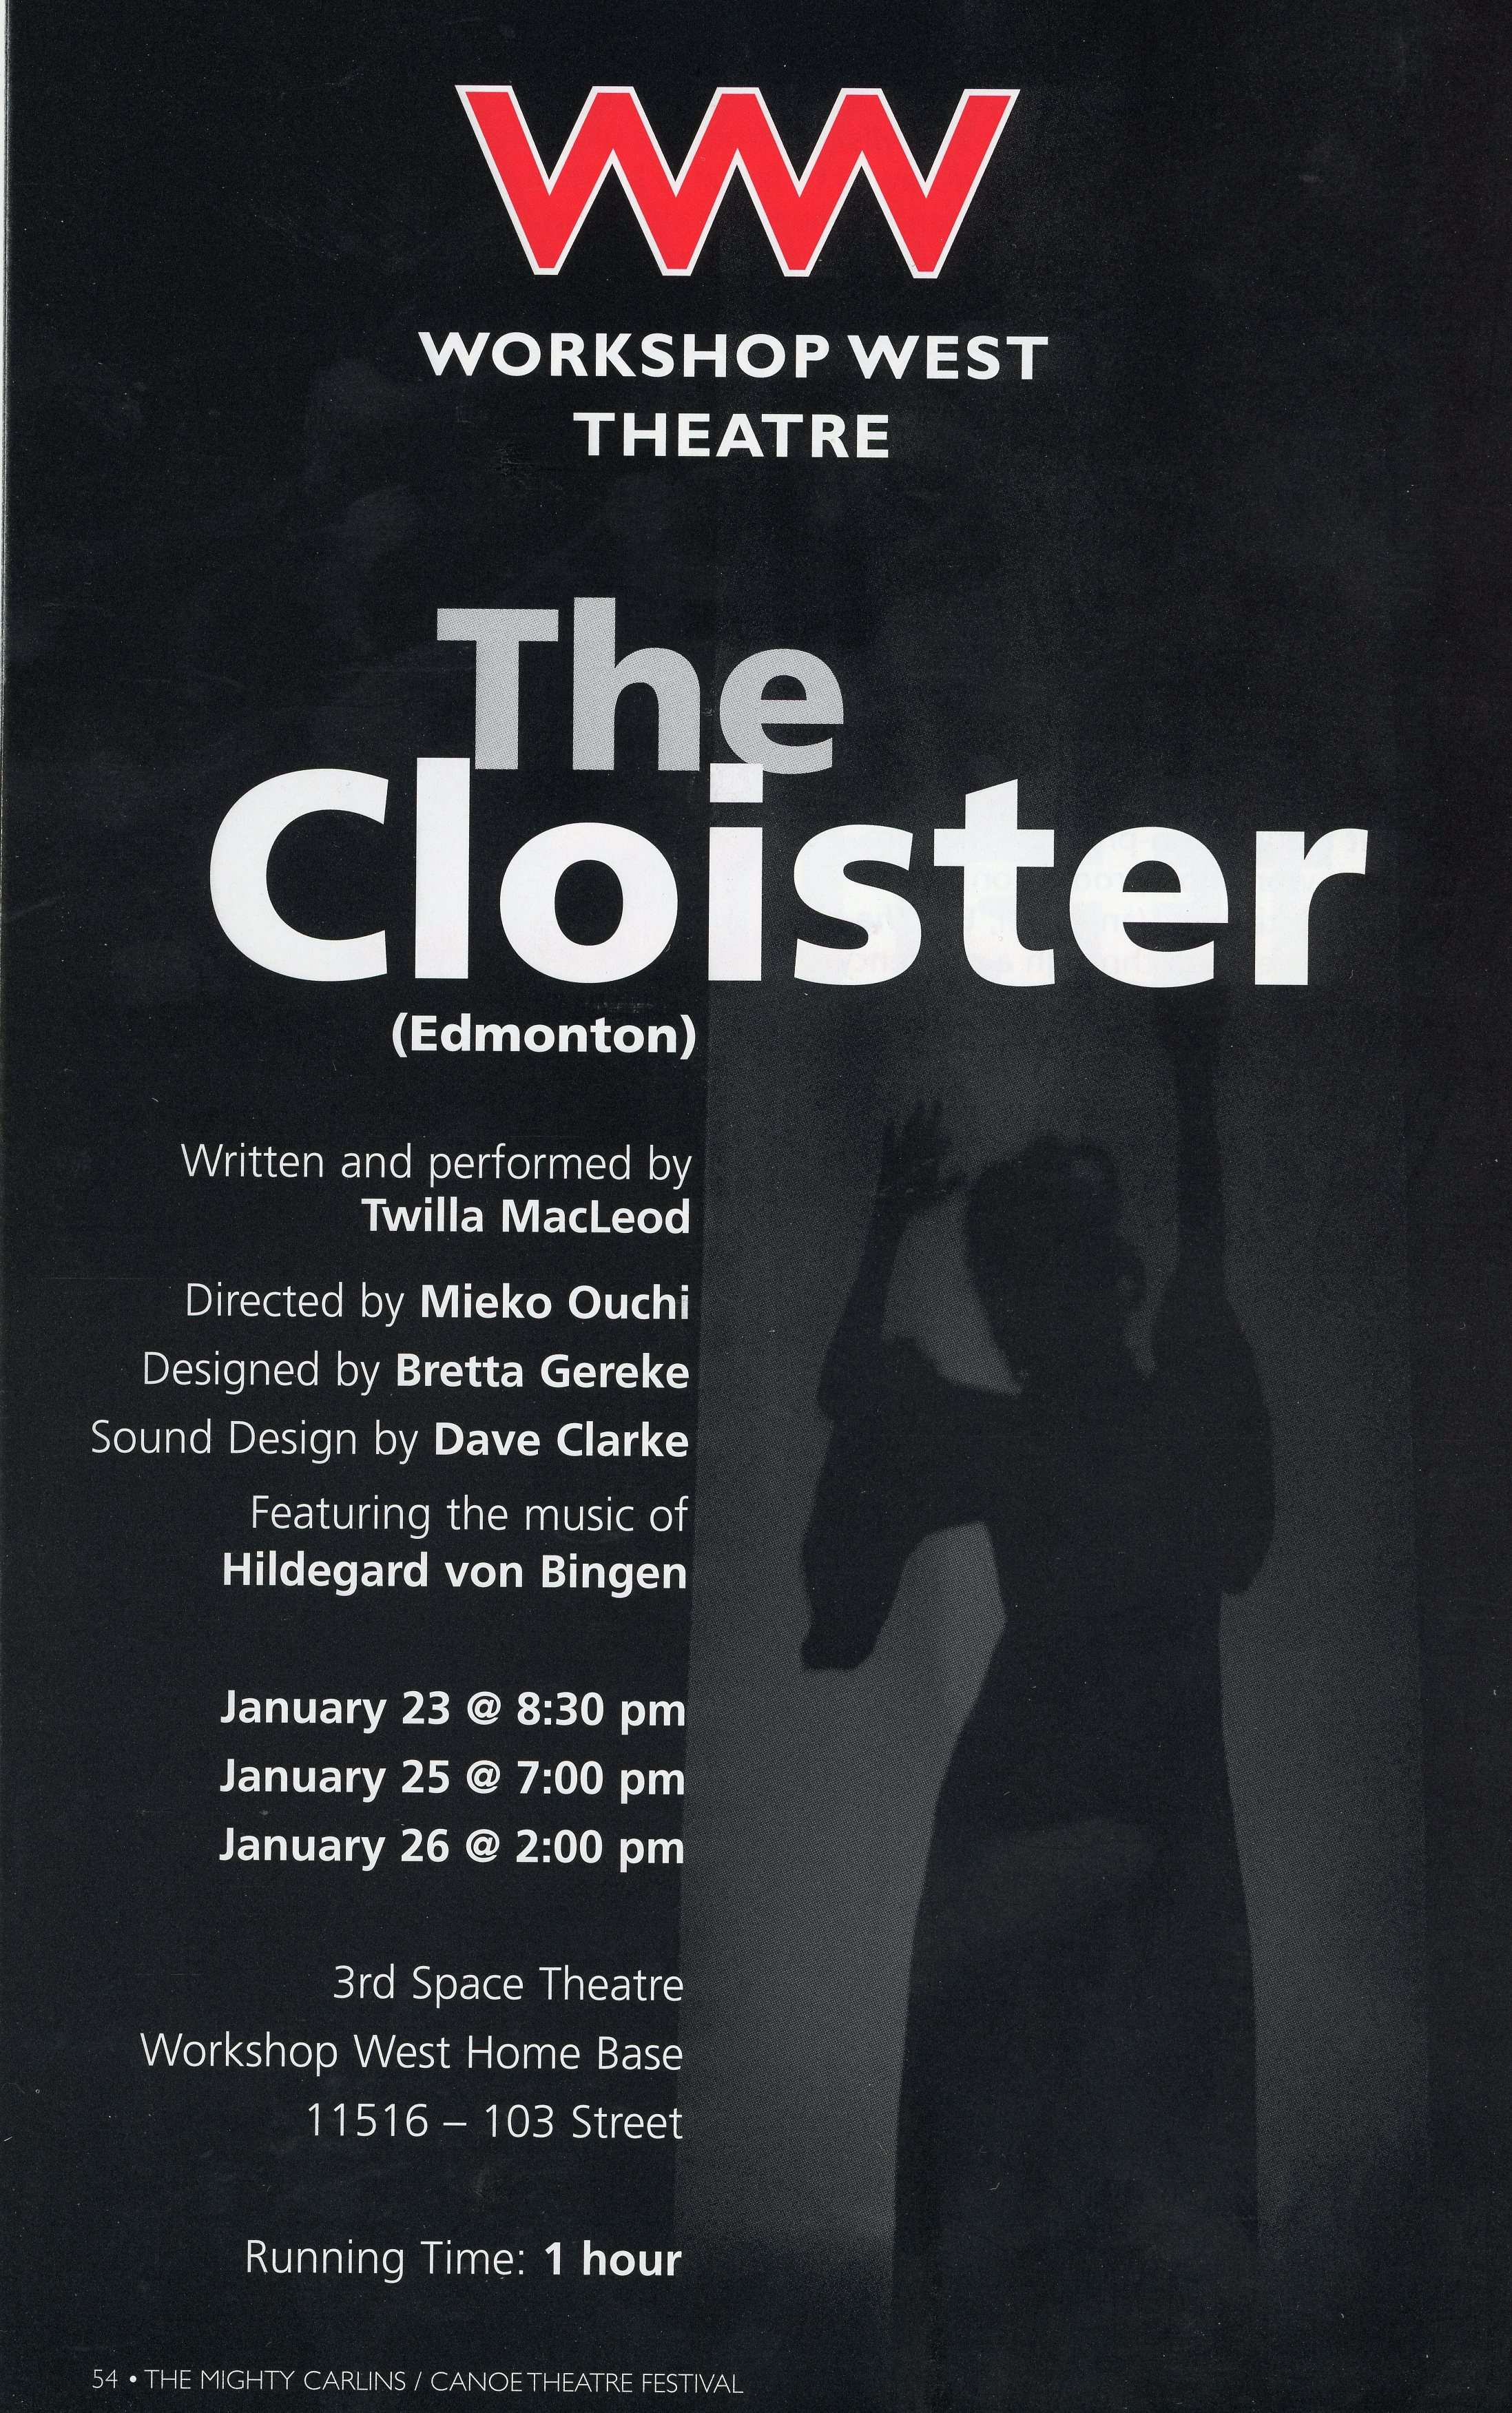 Workshop West Theatre (2008)-Production Information-The Cloister_JPEG.jpg